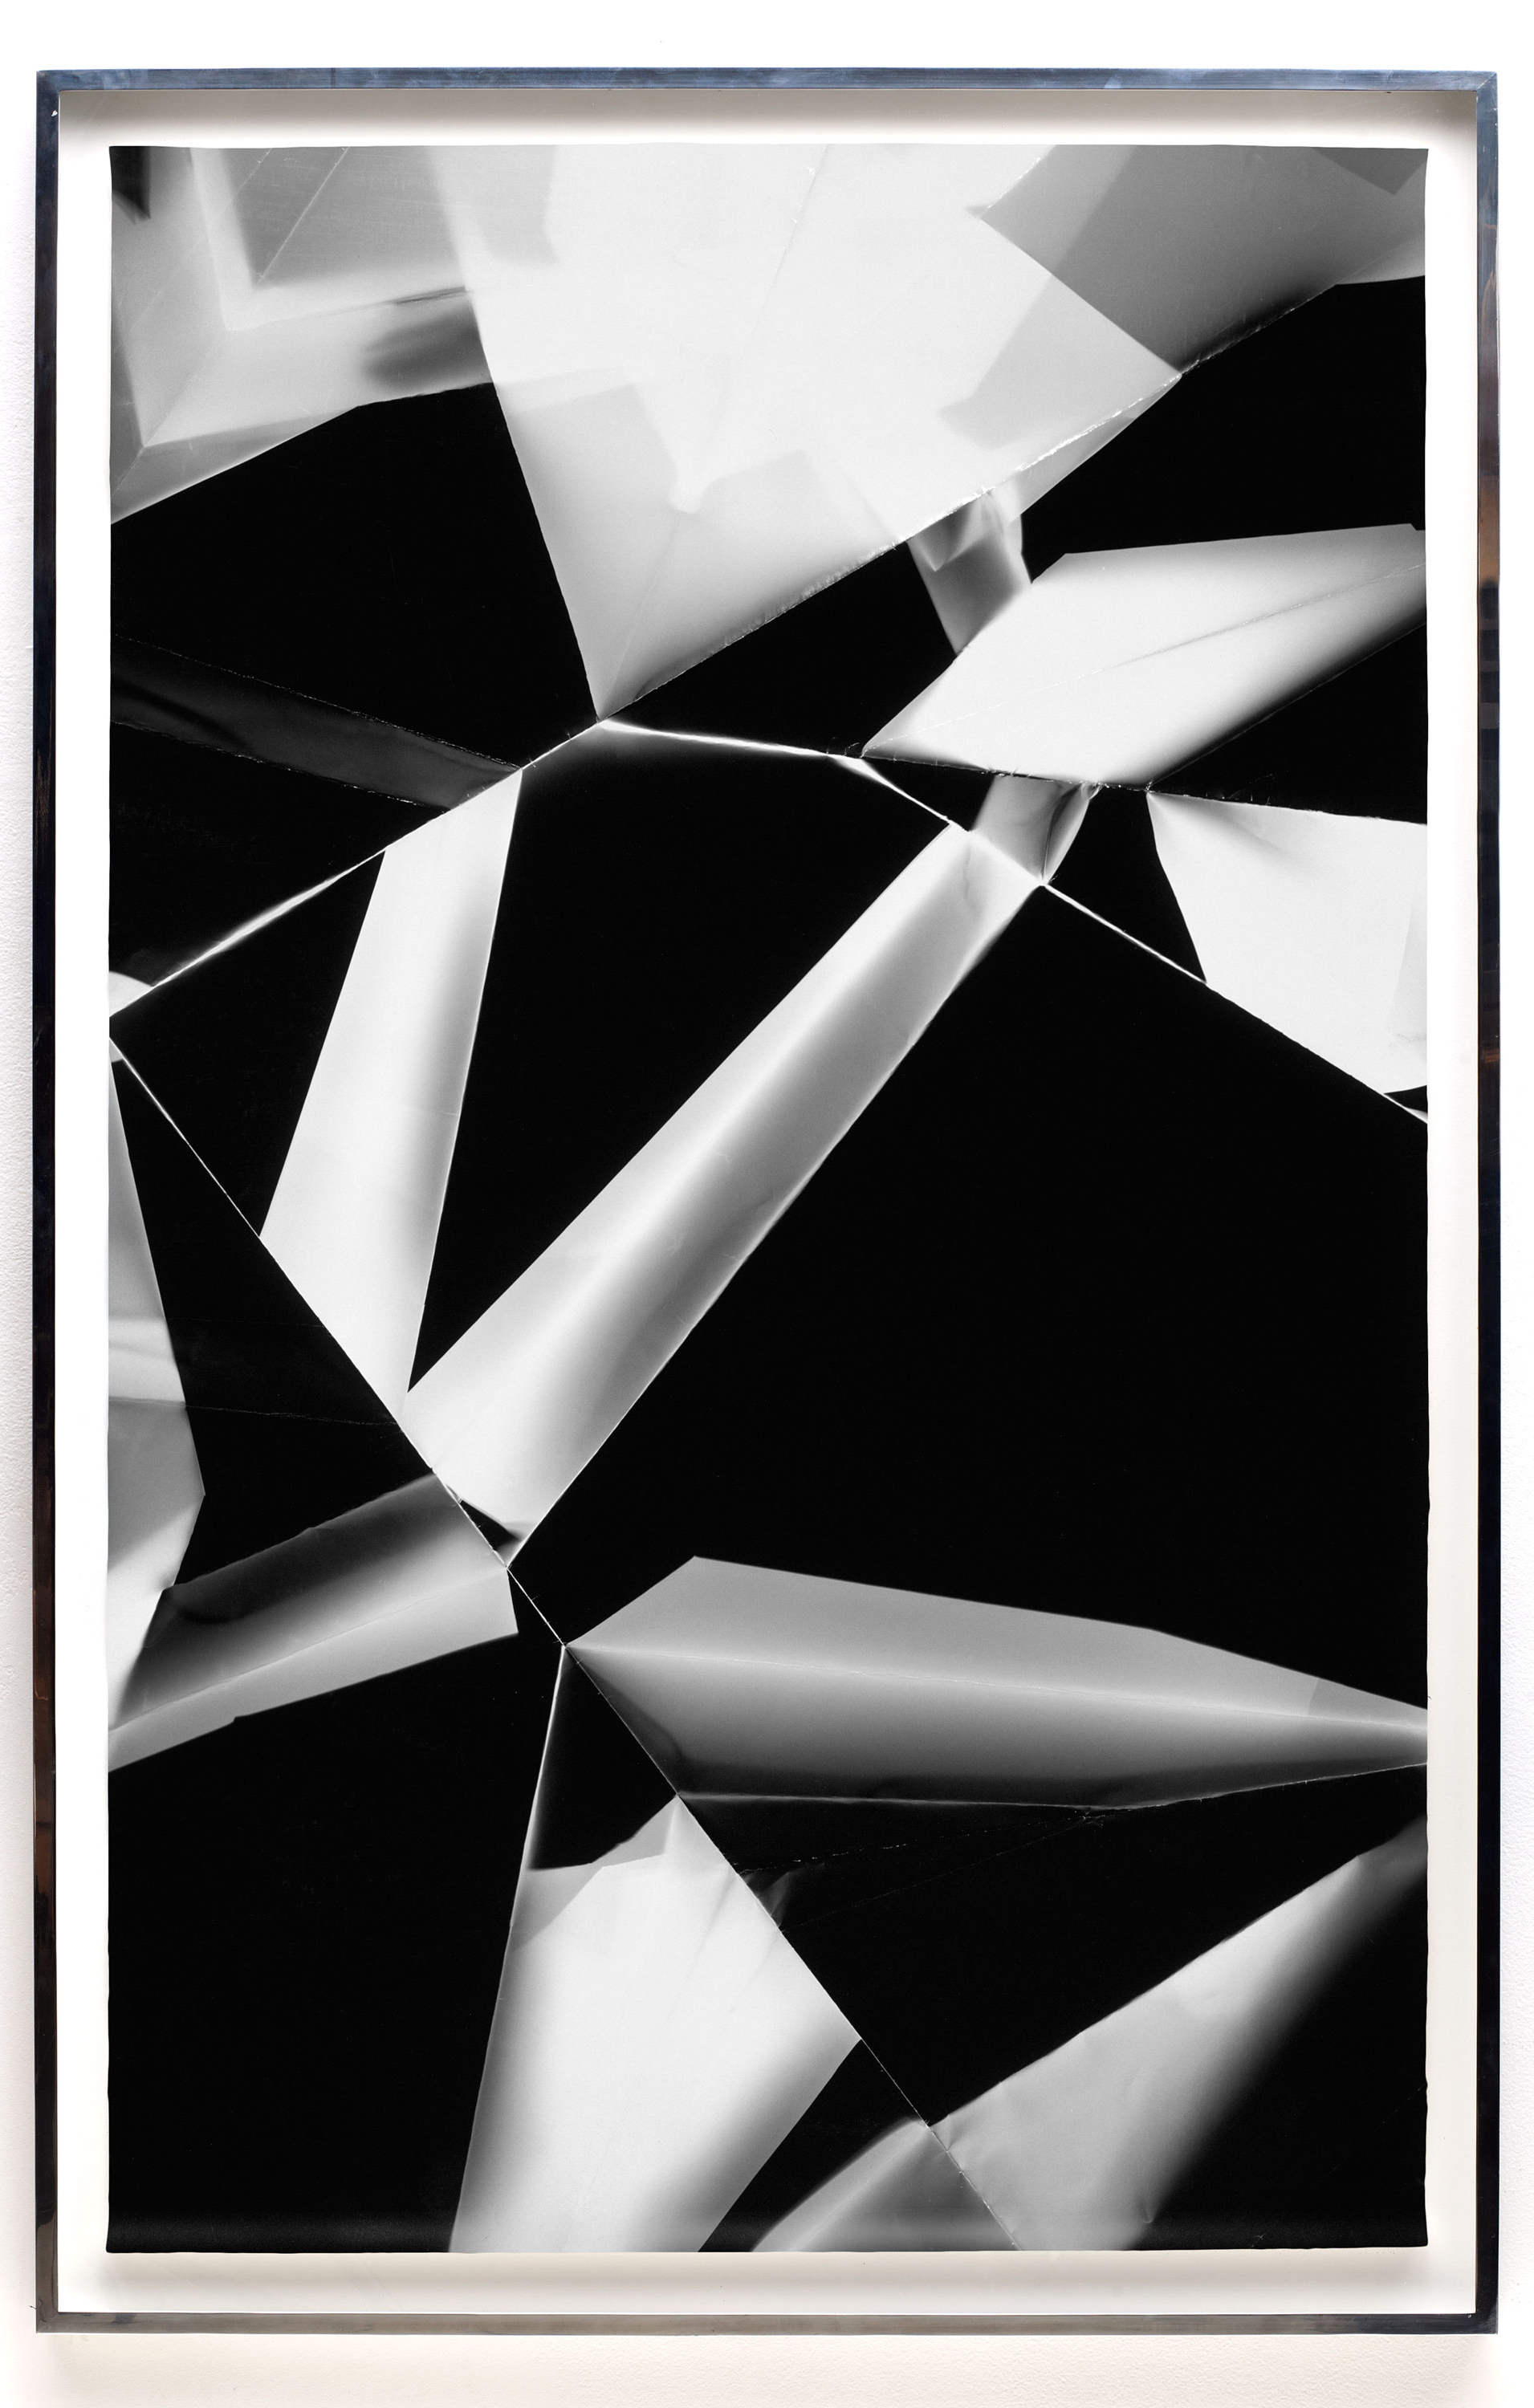 Fold (60º/120º/180º/240º/300º/360º directional light sources), June 5, 2008, Annandale-On-Hudson, New York, Foma Multigrade Fiber    2009   Black and white fiber based photographic paper  72 x 46 3/4 inches   Black and White Directional Folds, 2006–2014